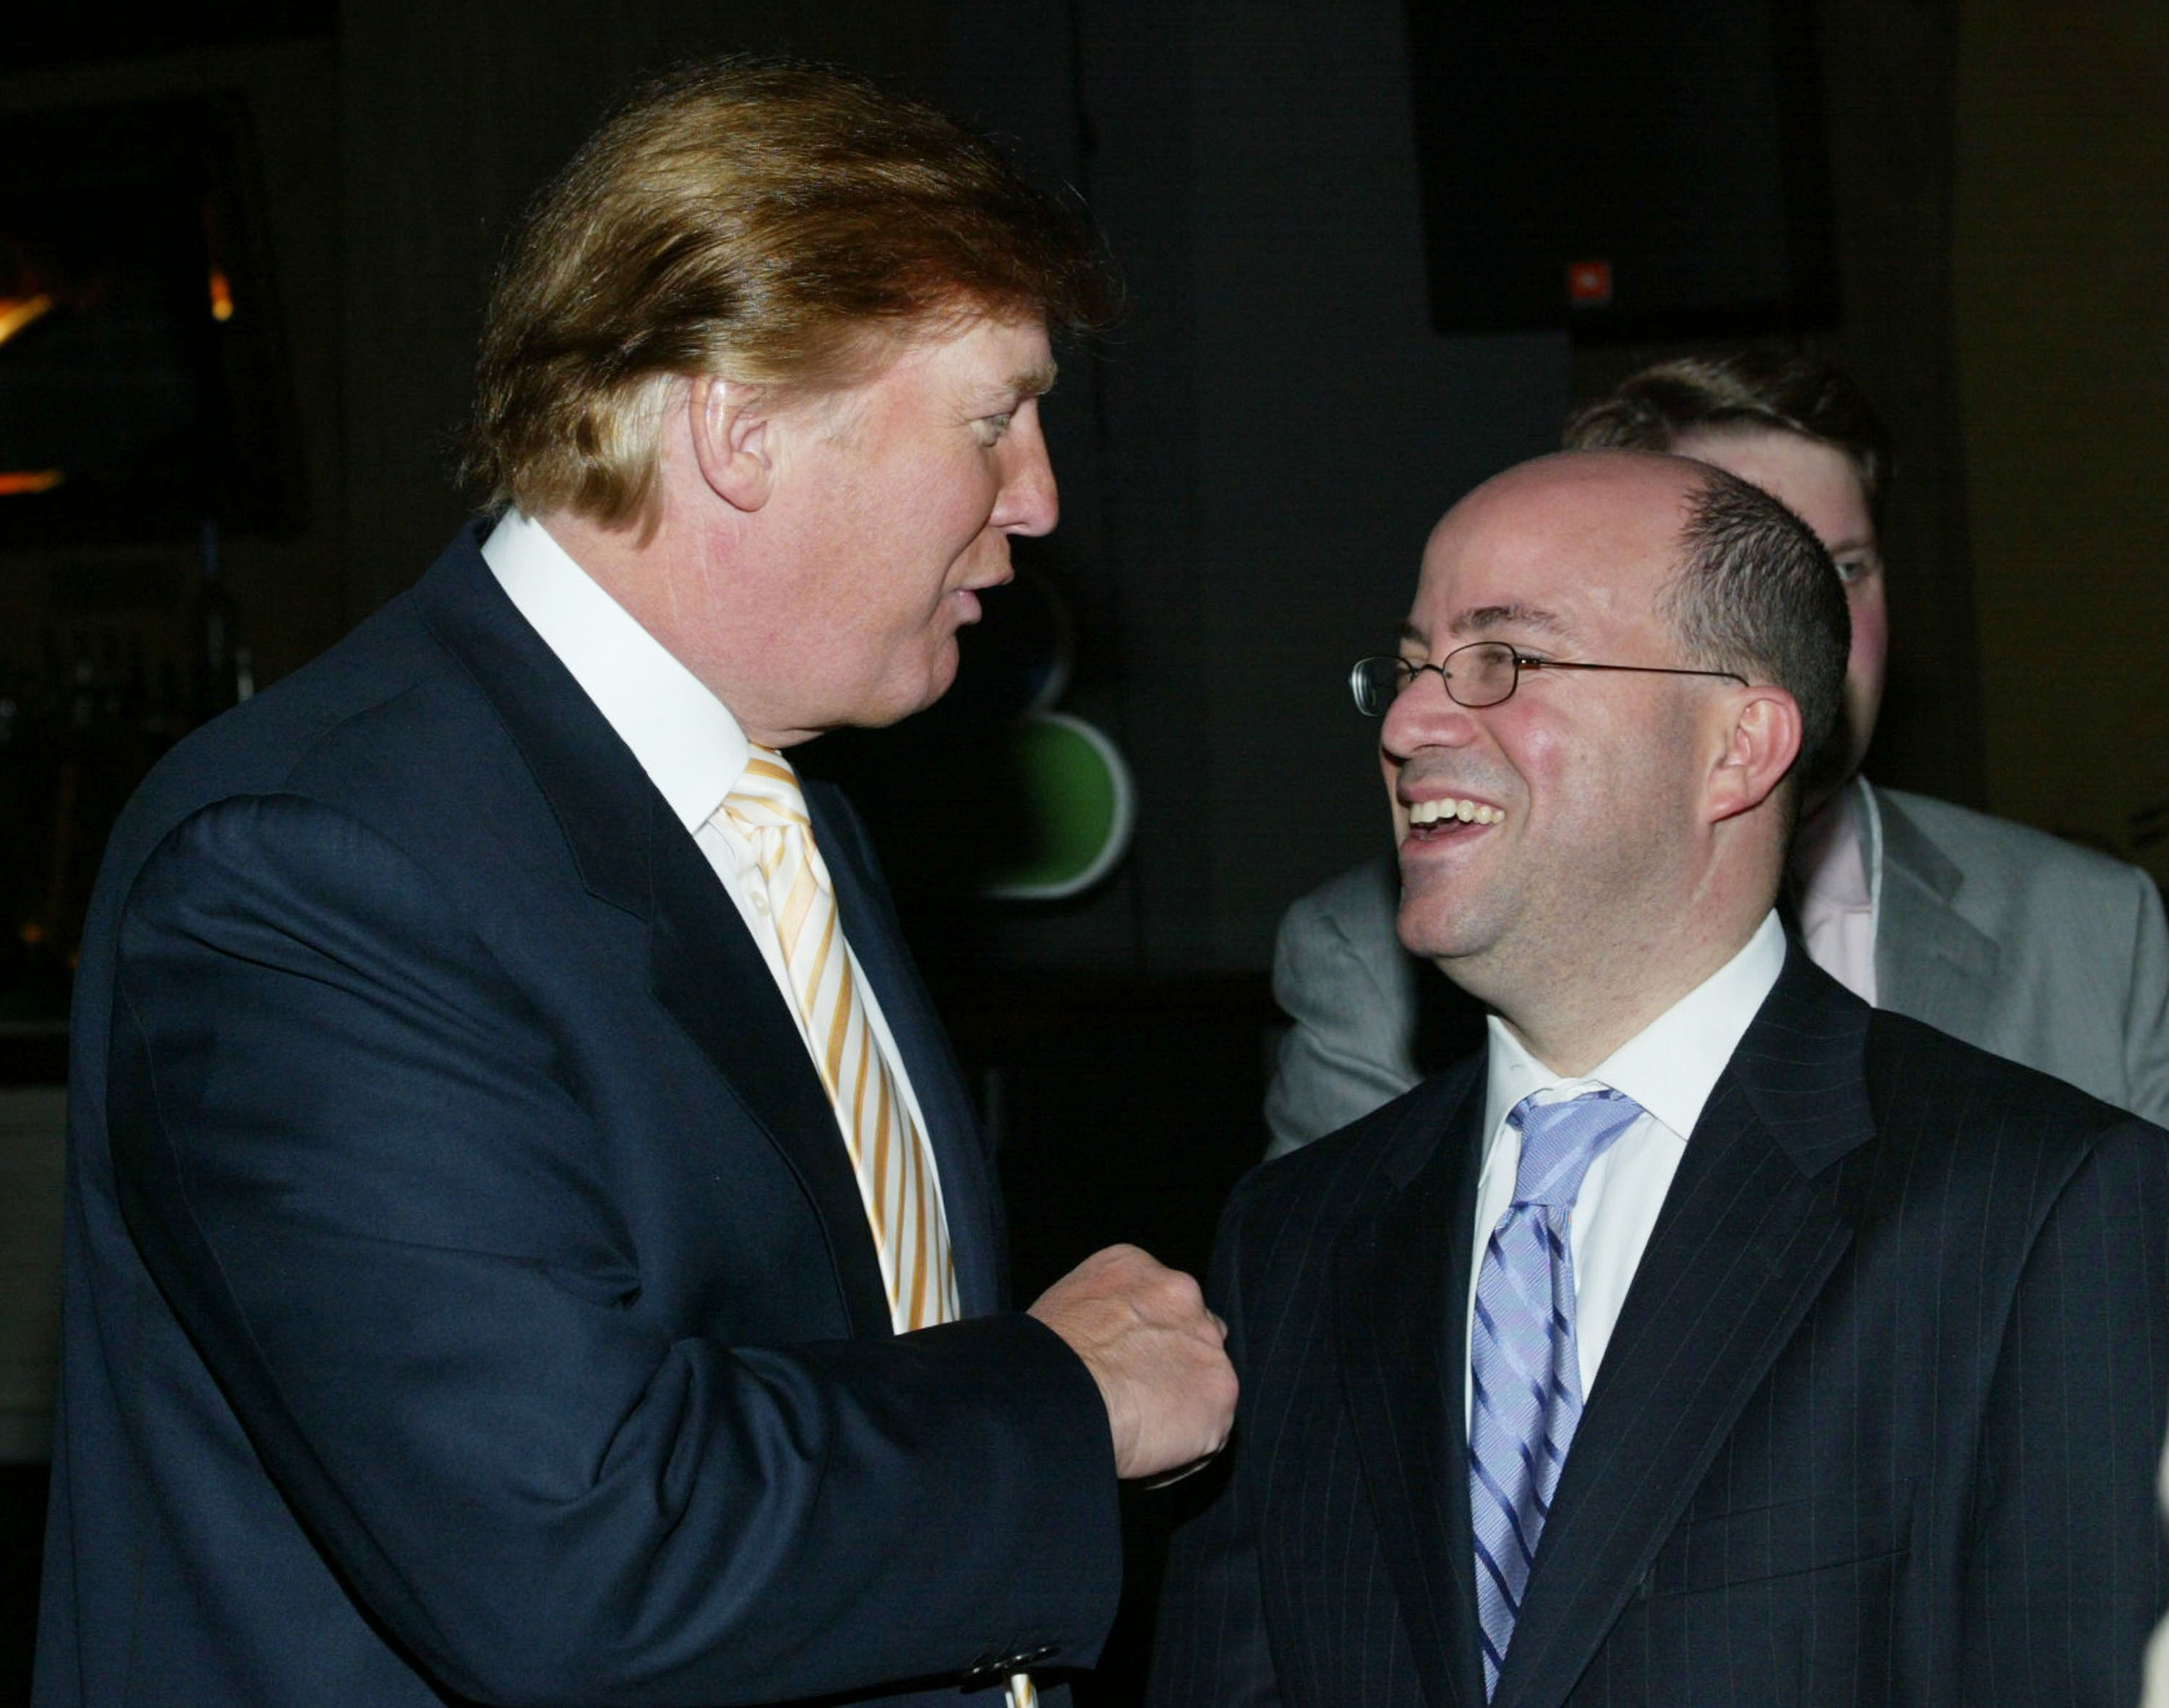 HOLLYWOOD.- JANUARY 14: (L to R) Donald Trump and Jeff Zucker, president, NBC Entertainment, News and Cable attend the 2004 NBC Winter Press Tour All-Star Party at the Highlands on January 14, 2004 in Hollywood, California. (Photo by Frederick M. Brown/Getty Images).